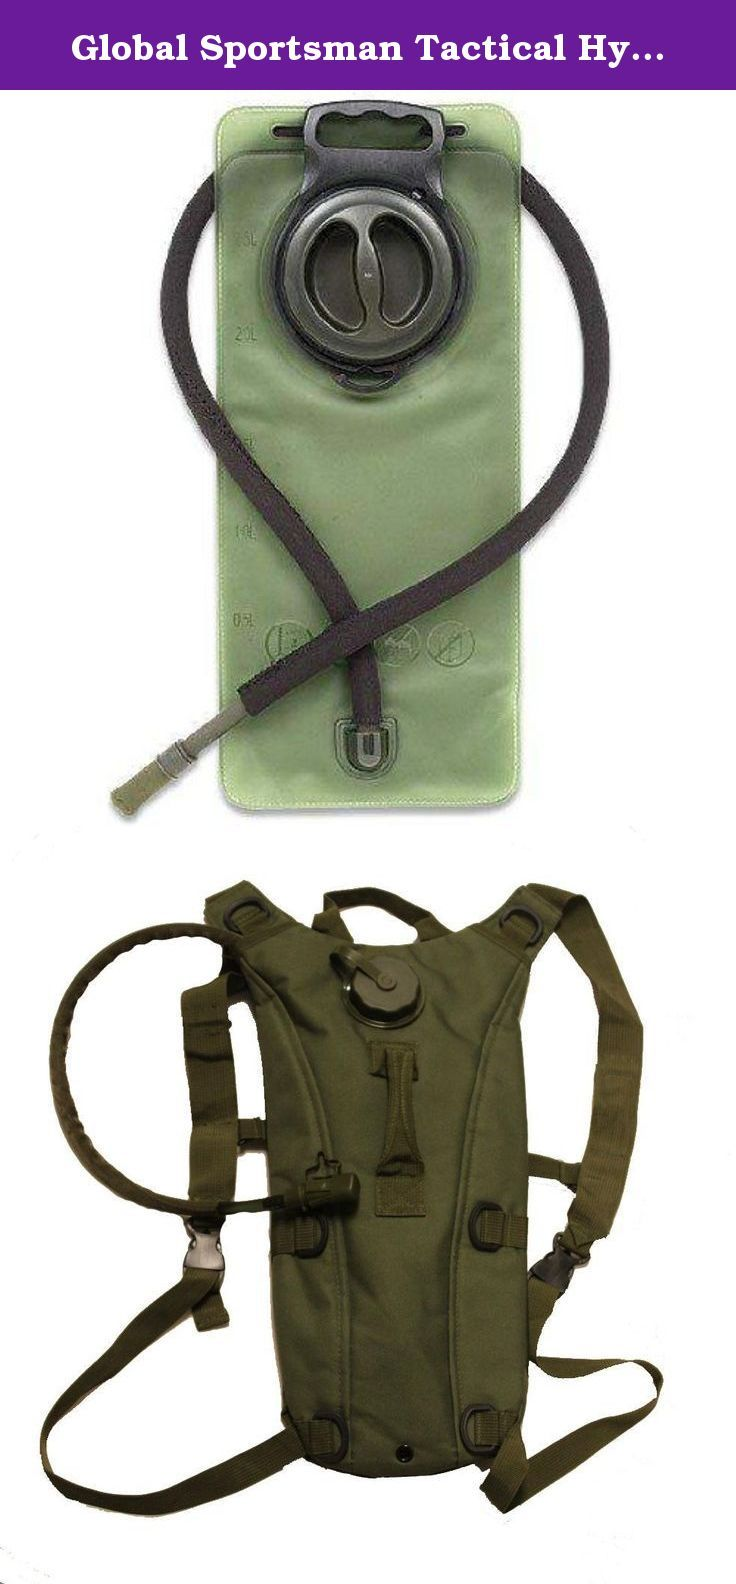 Global Sportsman Tactical Hydration Pack Backpack Carrier With 2.5 Liter / 84 oz. Water Drinking Bladder Reservoir Capacity System Includes Hosing And Hands Free Bite Valve, Heavy Duty D-Rings, Storage Pocket, Adjustable Shoulder Strap & Emergency Carry Handle - Camping Hiking Outdoor Hunting Airsoft Bicycle Running Sports Military Army Patrol (OD Olive Drab Green). Official Product of Global Sportsman, Brand New. Tactical Hydration Bladder Backpack + 2.5 Liter Water Bladder with Hosing....